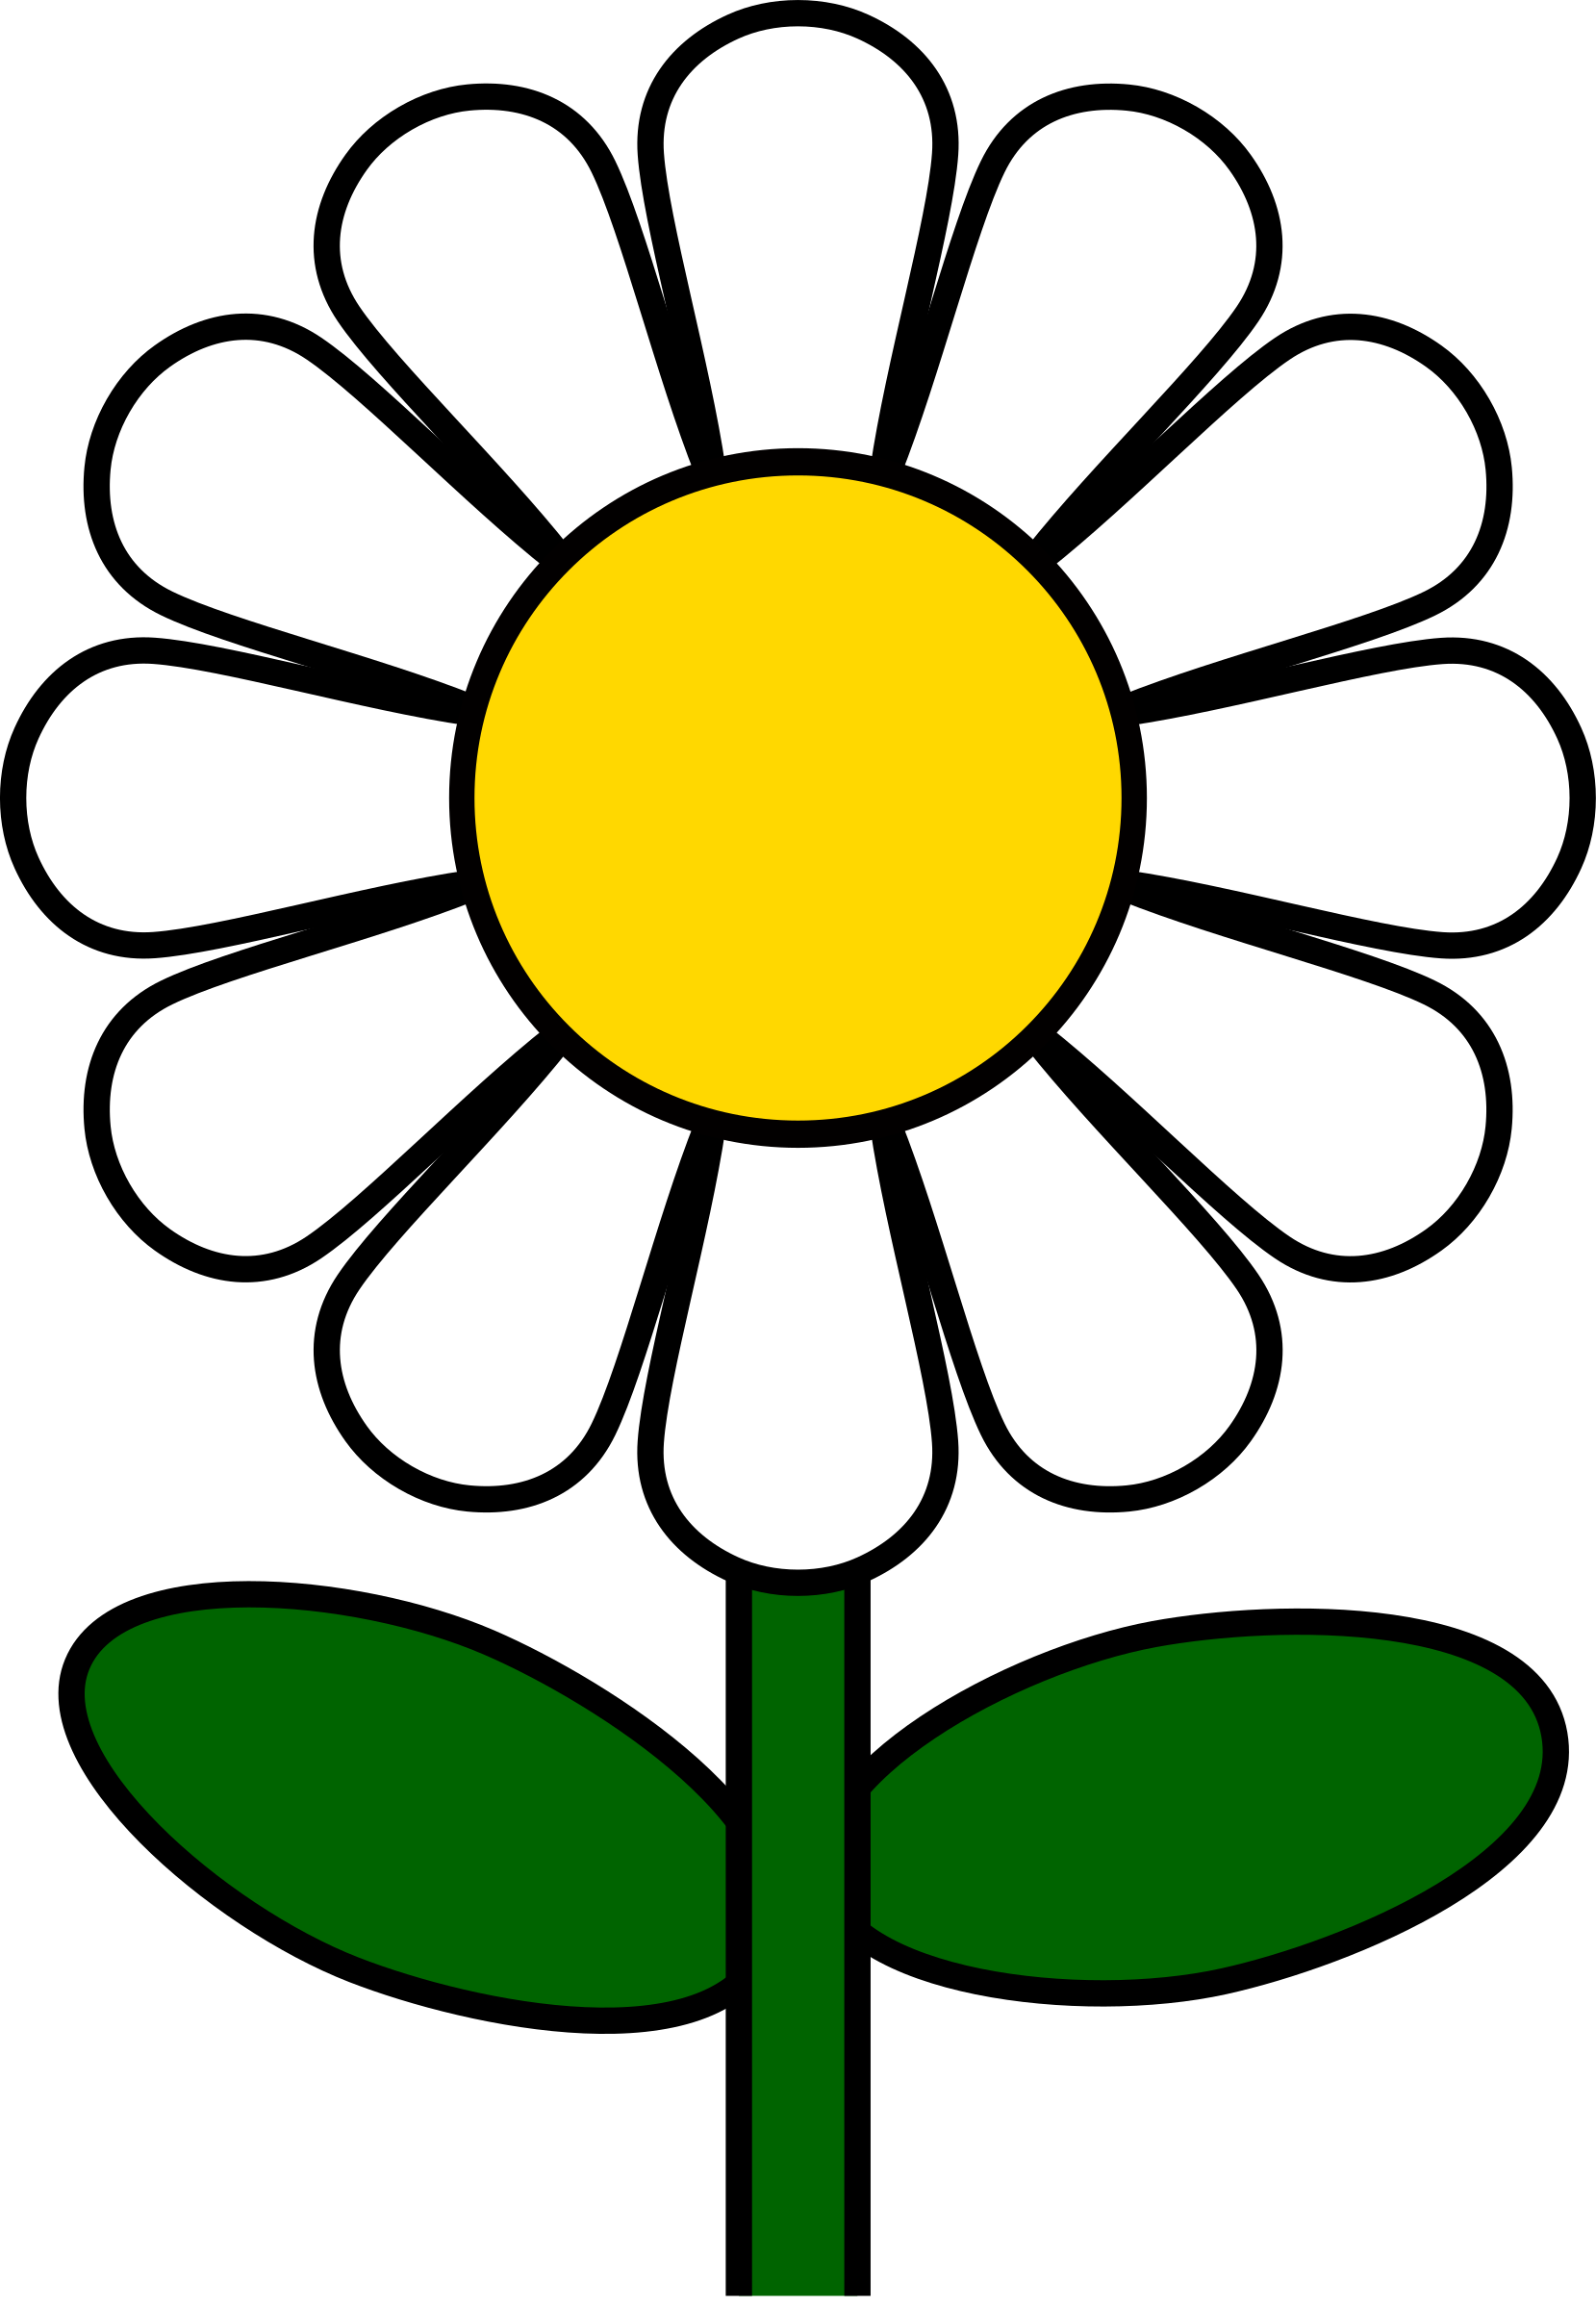 1659x2400 Daisy By @laobc, A Daisy,e Of The Symbols Of Spring.,